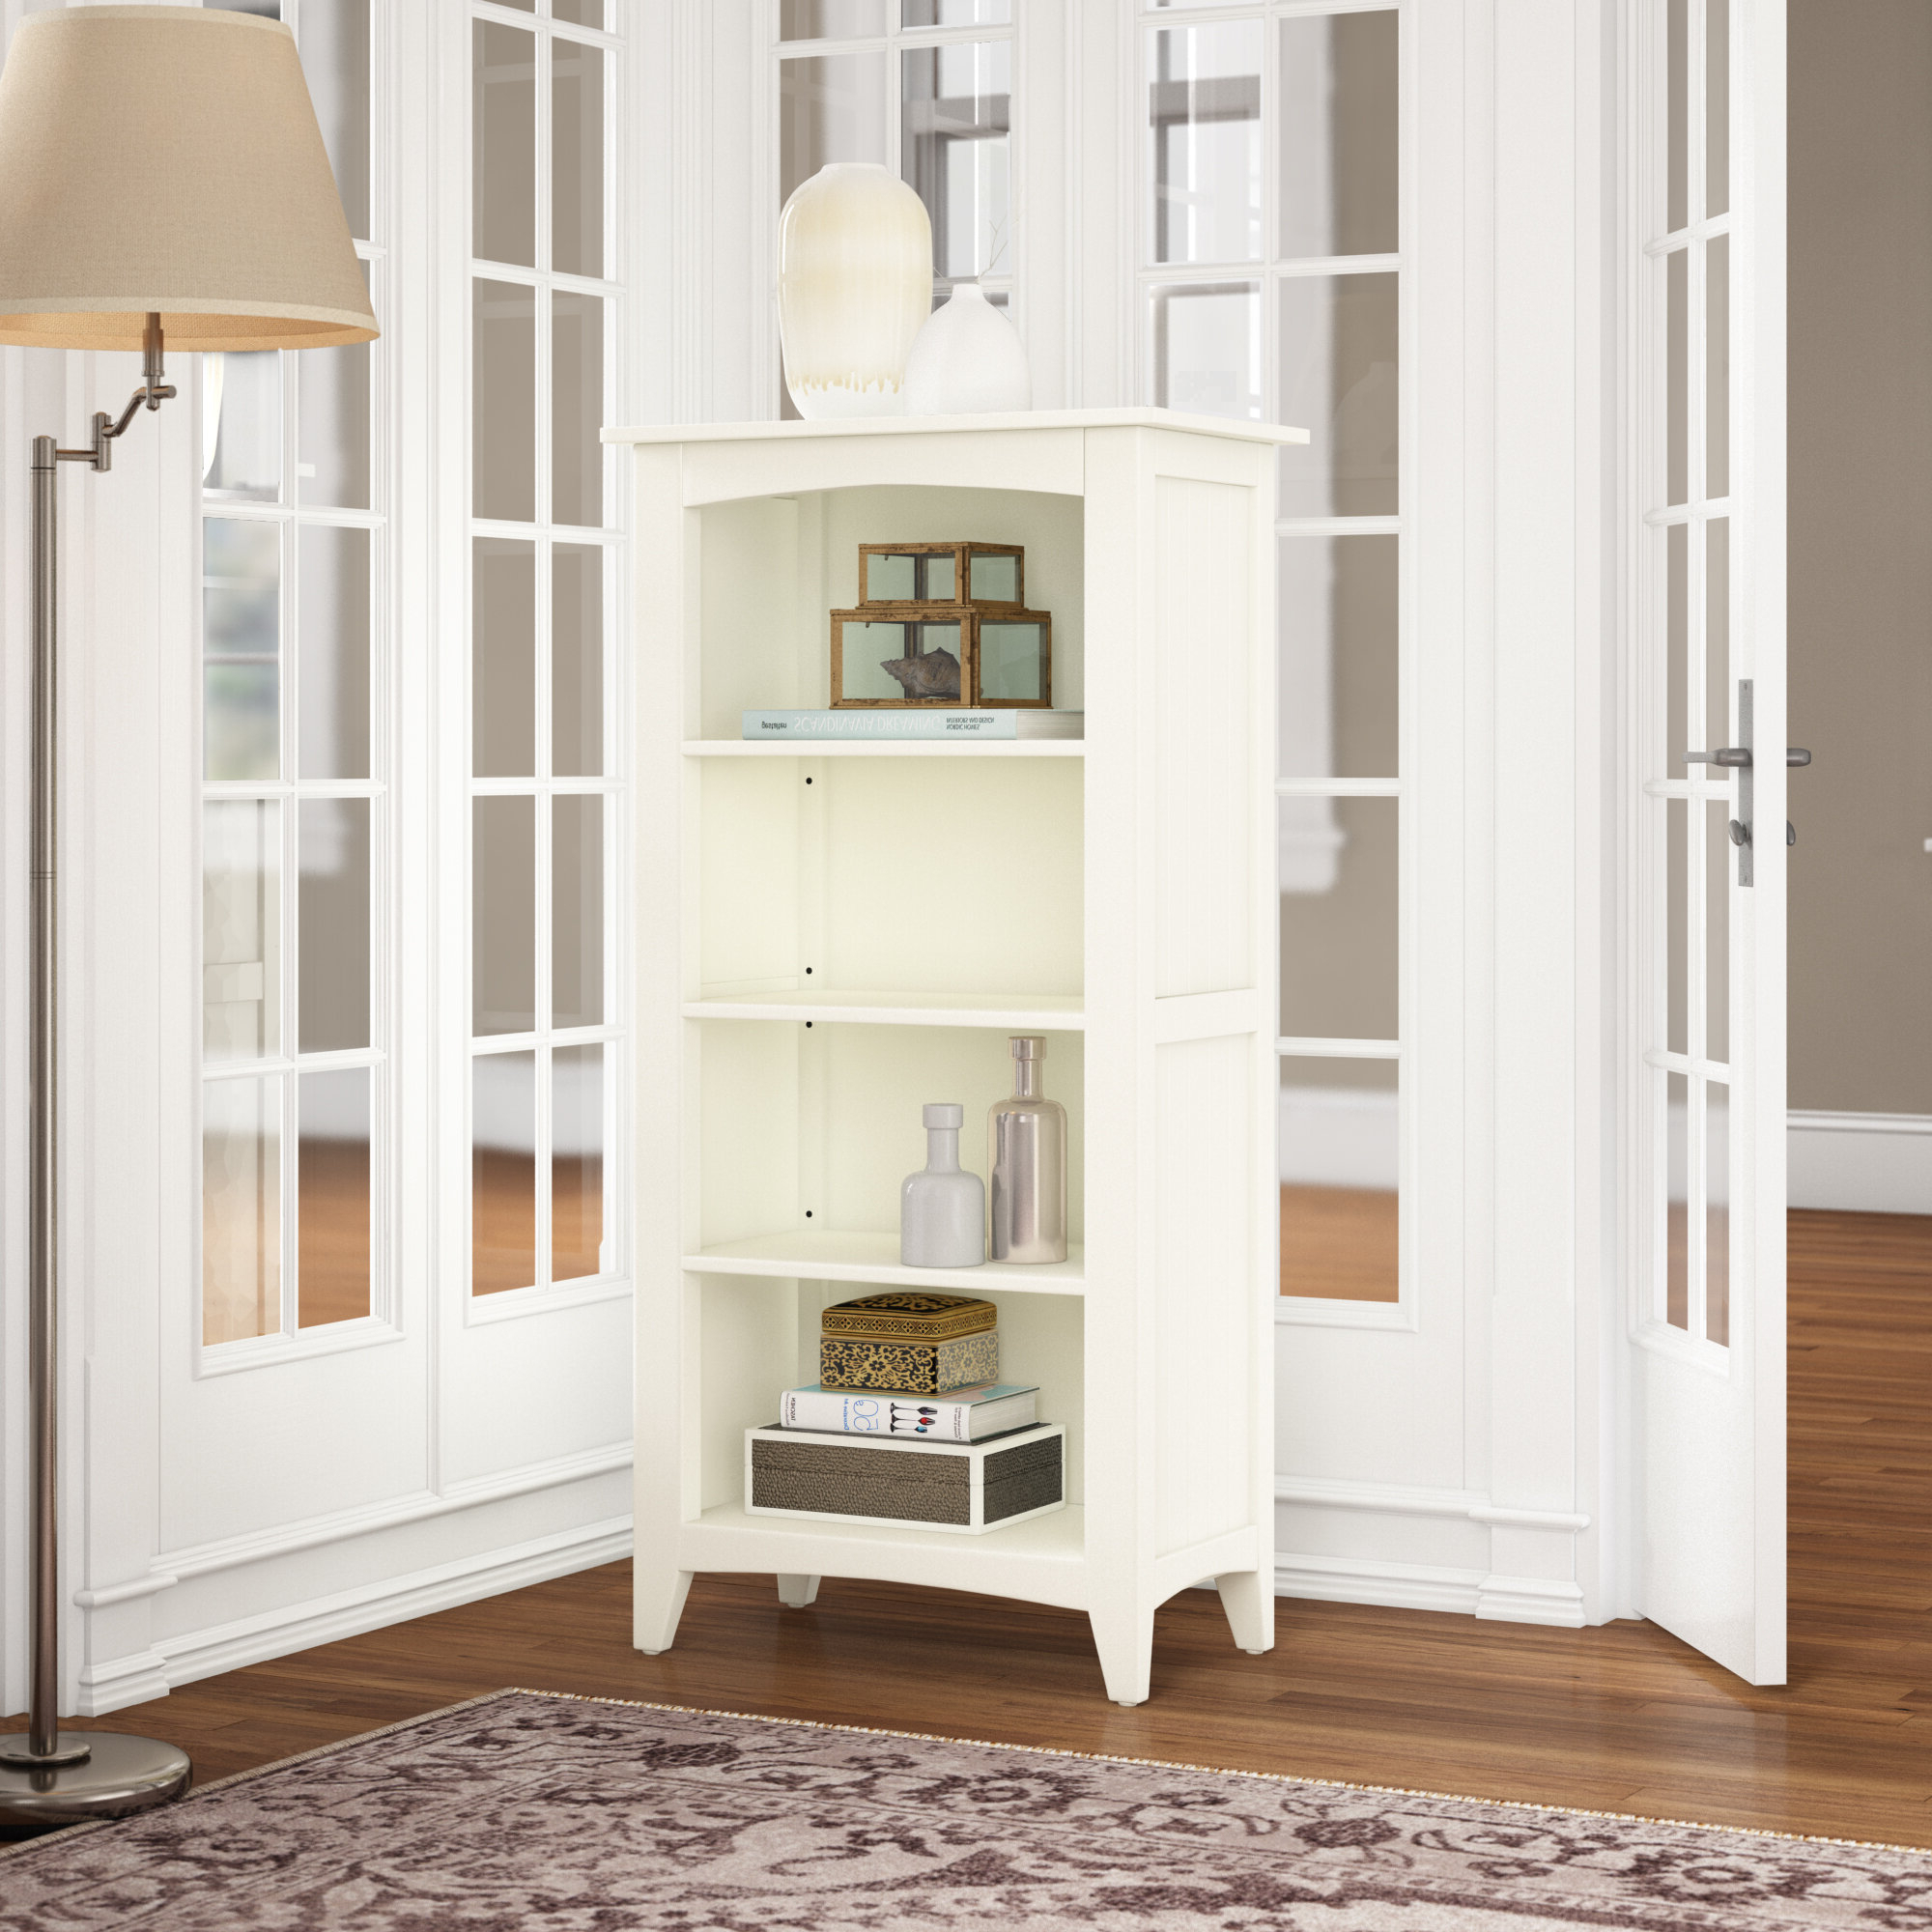 Kerlin Standard Bookcase For Most Recently Released Kerlin Standard Bookcases (View 6 of 20)